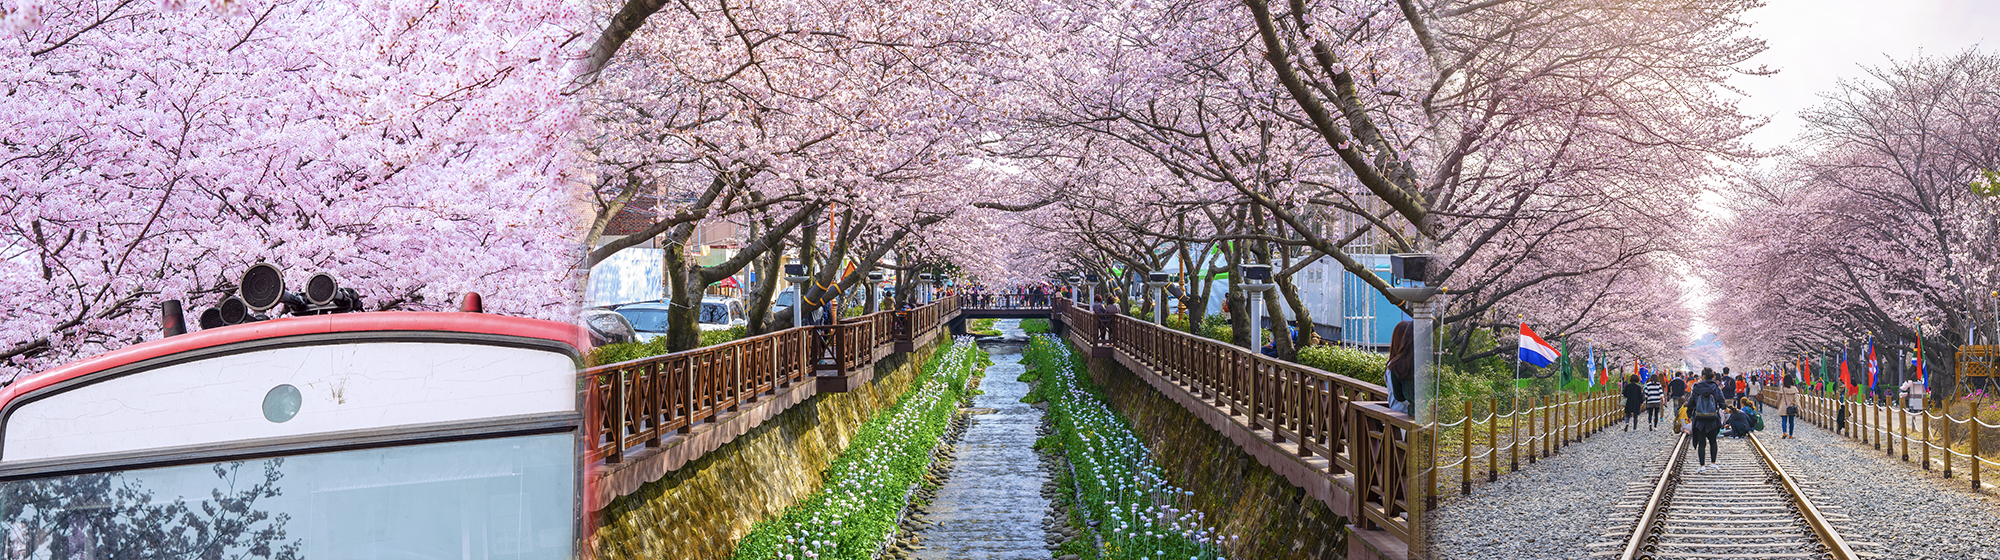 2020 Jinhae Cherry Blossom Festival 1Day Shuttle Bus Package Tour – From Seoul (Mar 27 – Apr 6) | KoreaTravelEasy